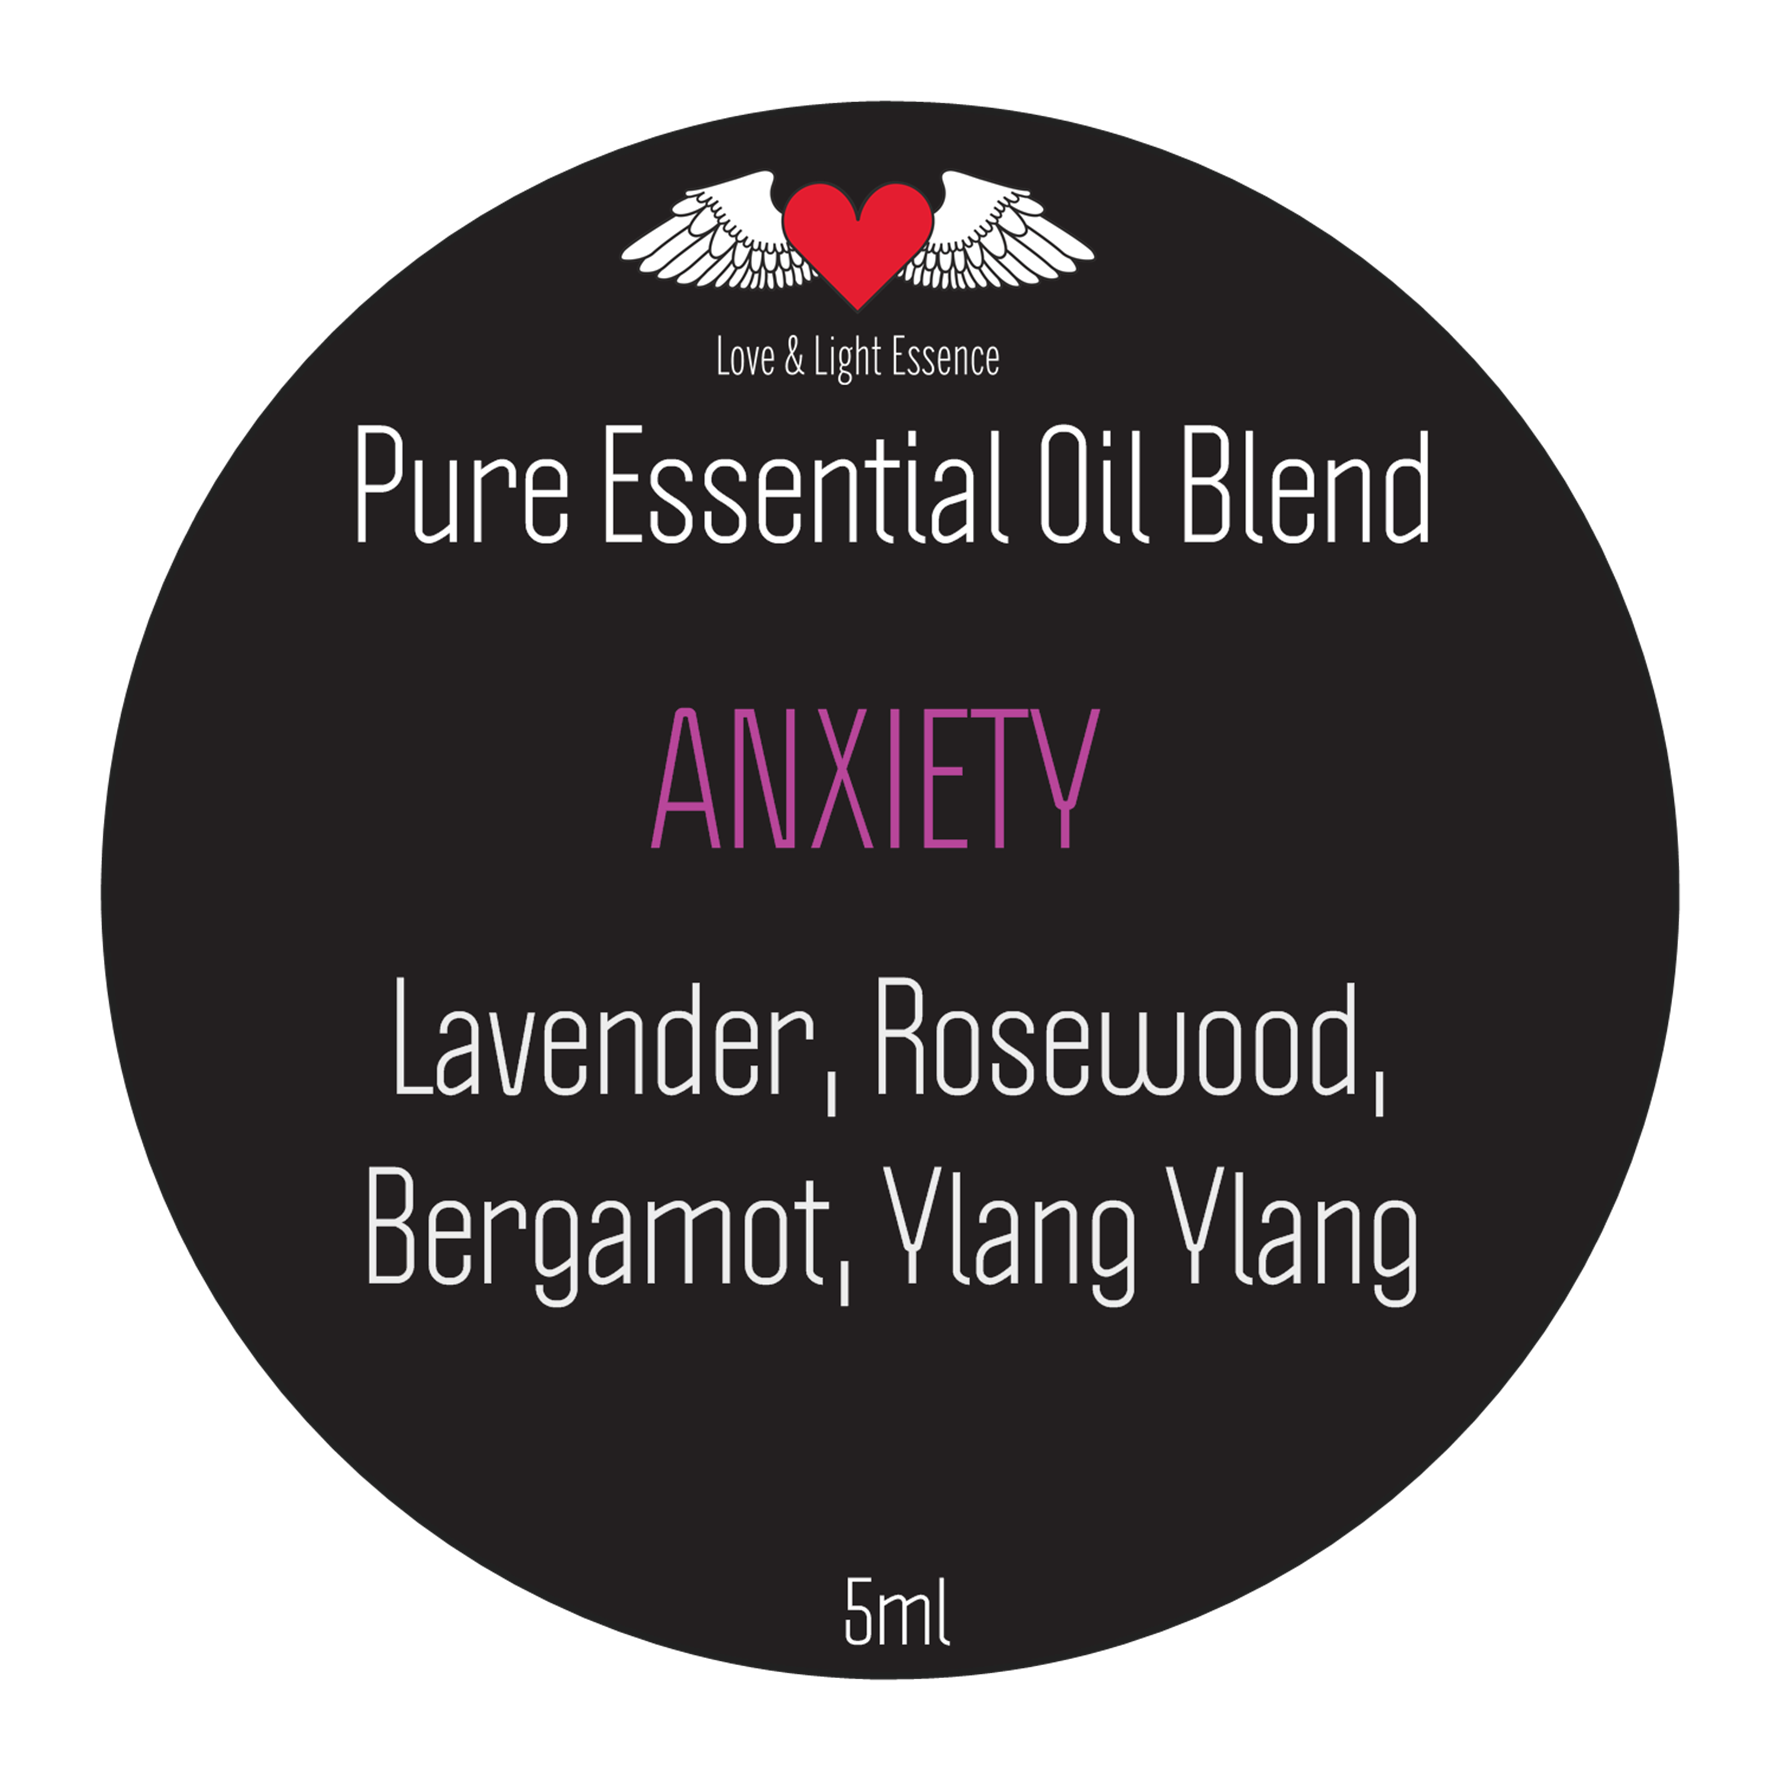 Pure Essential Oil Blend - Anxiety